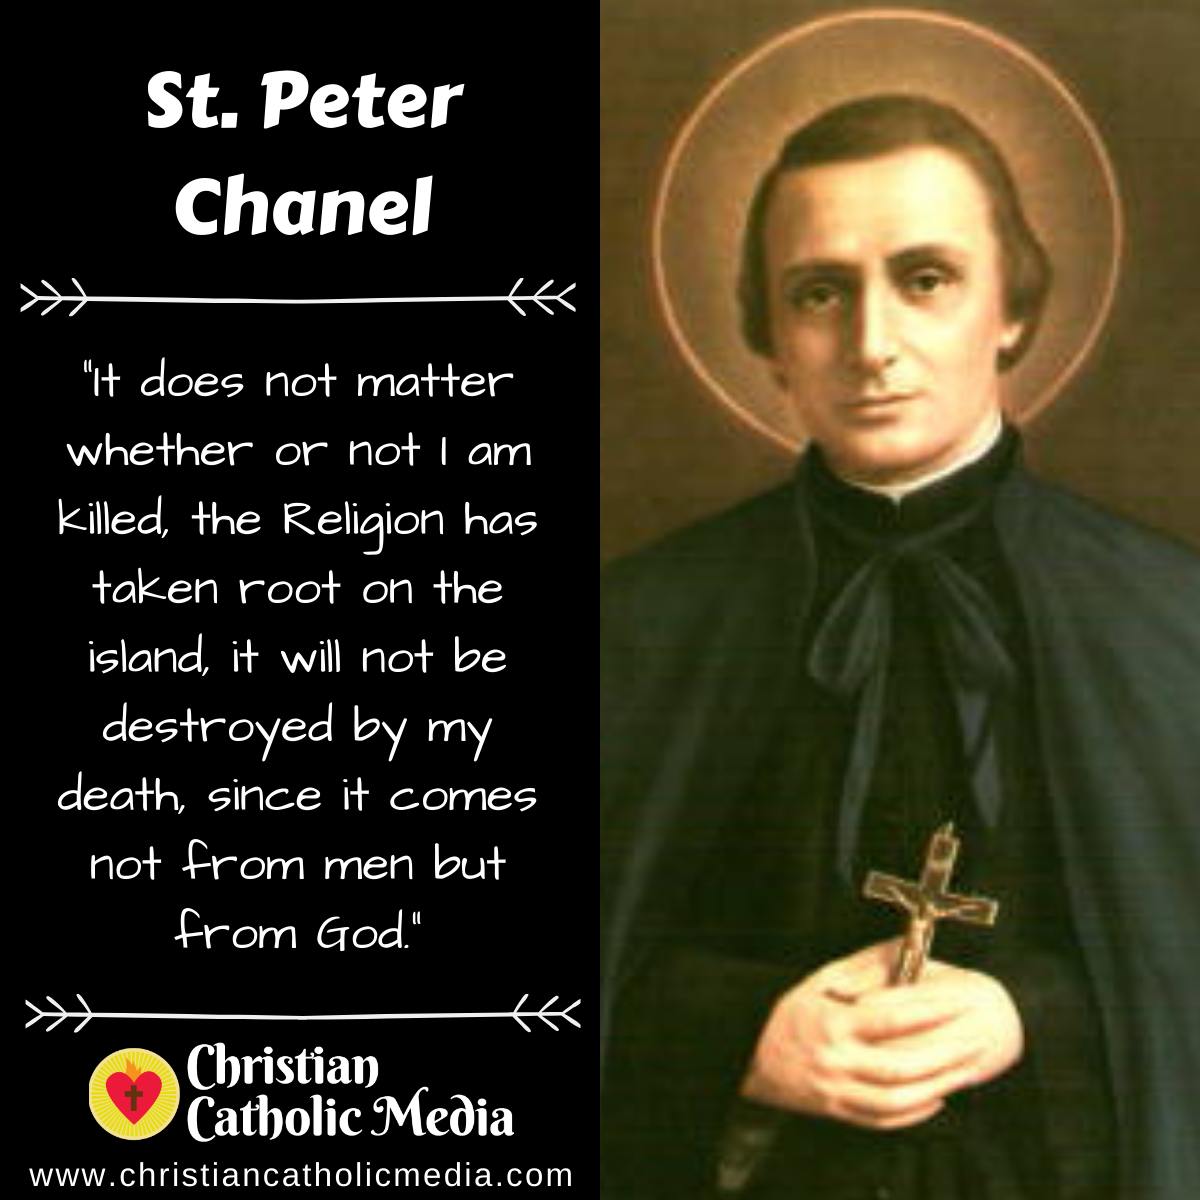 St. Peter Chanel - Wednesday April 28, 2021